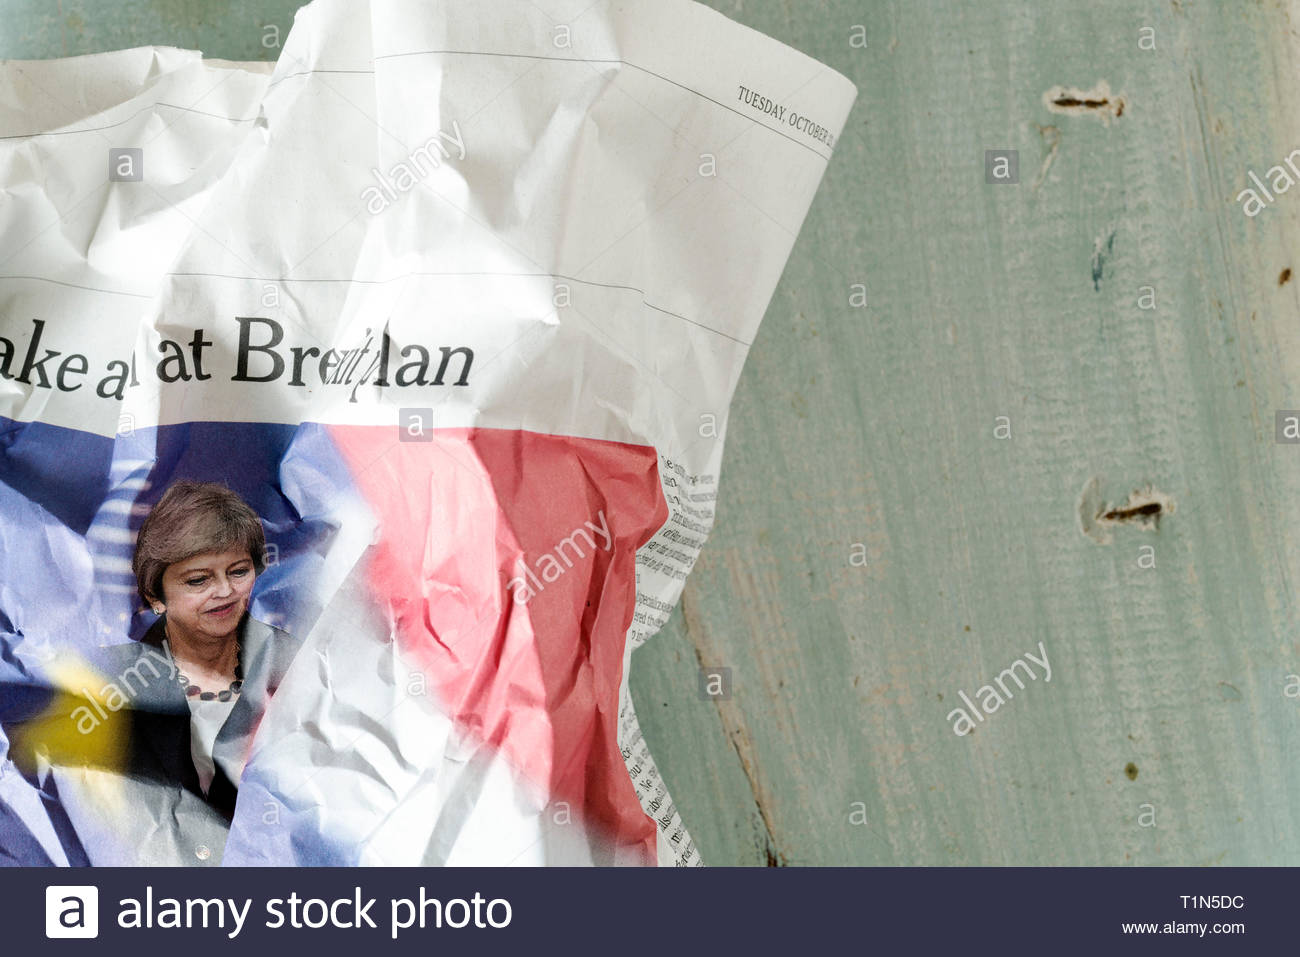 crumpled newspaper with portrait of English Prime Minister Theresa May - Stock Image